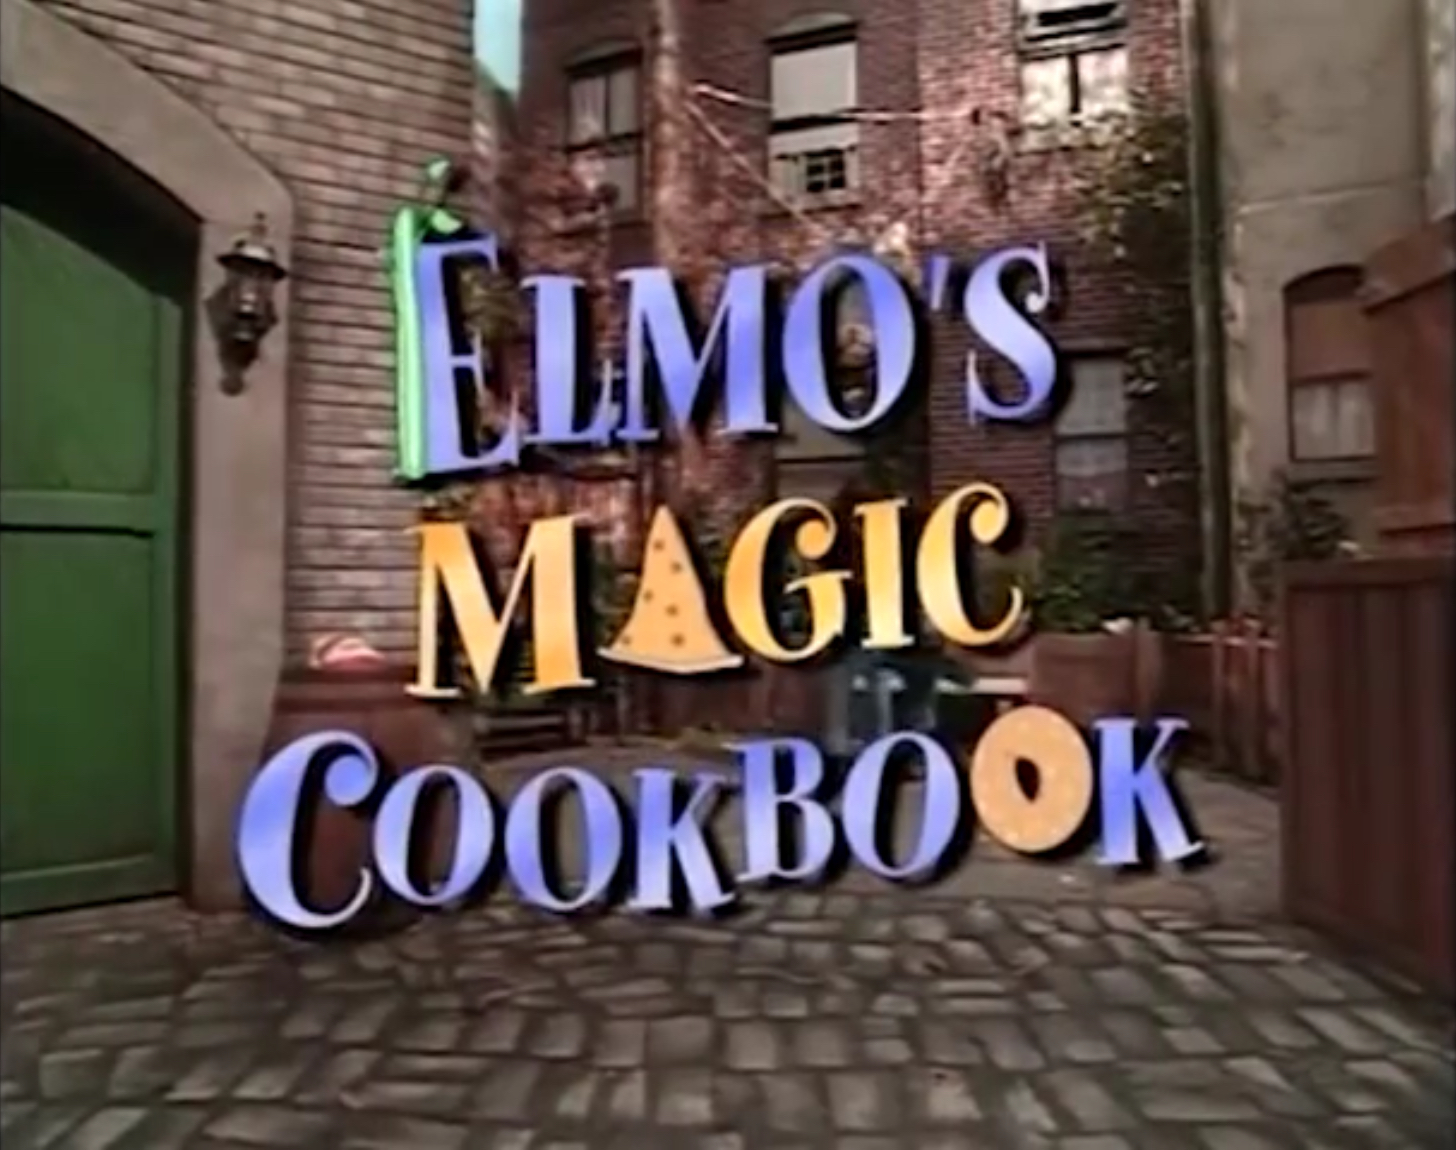 Elmo's Magic Cookbook/Gallery